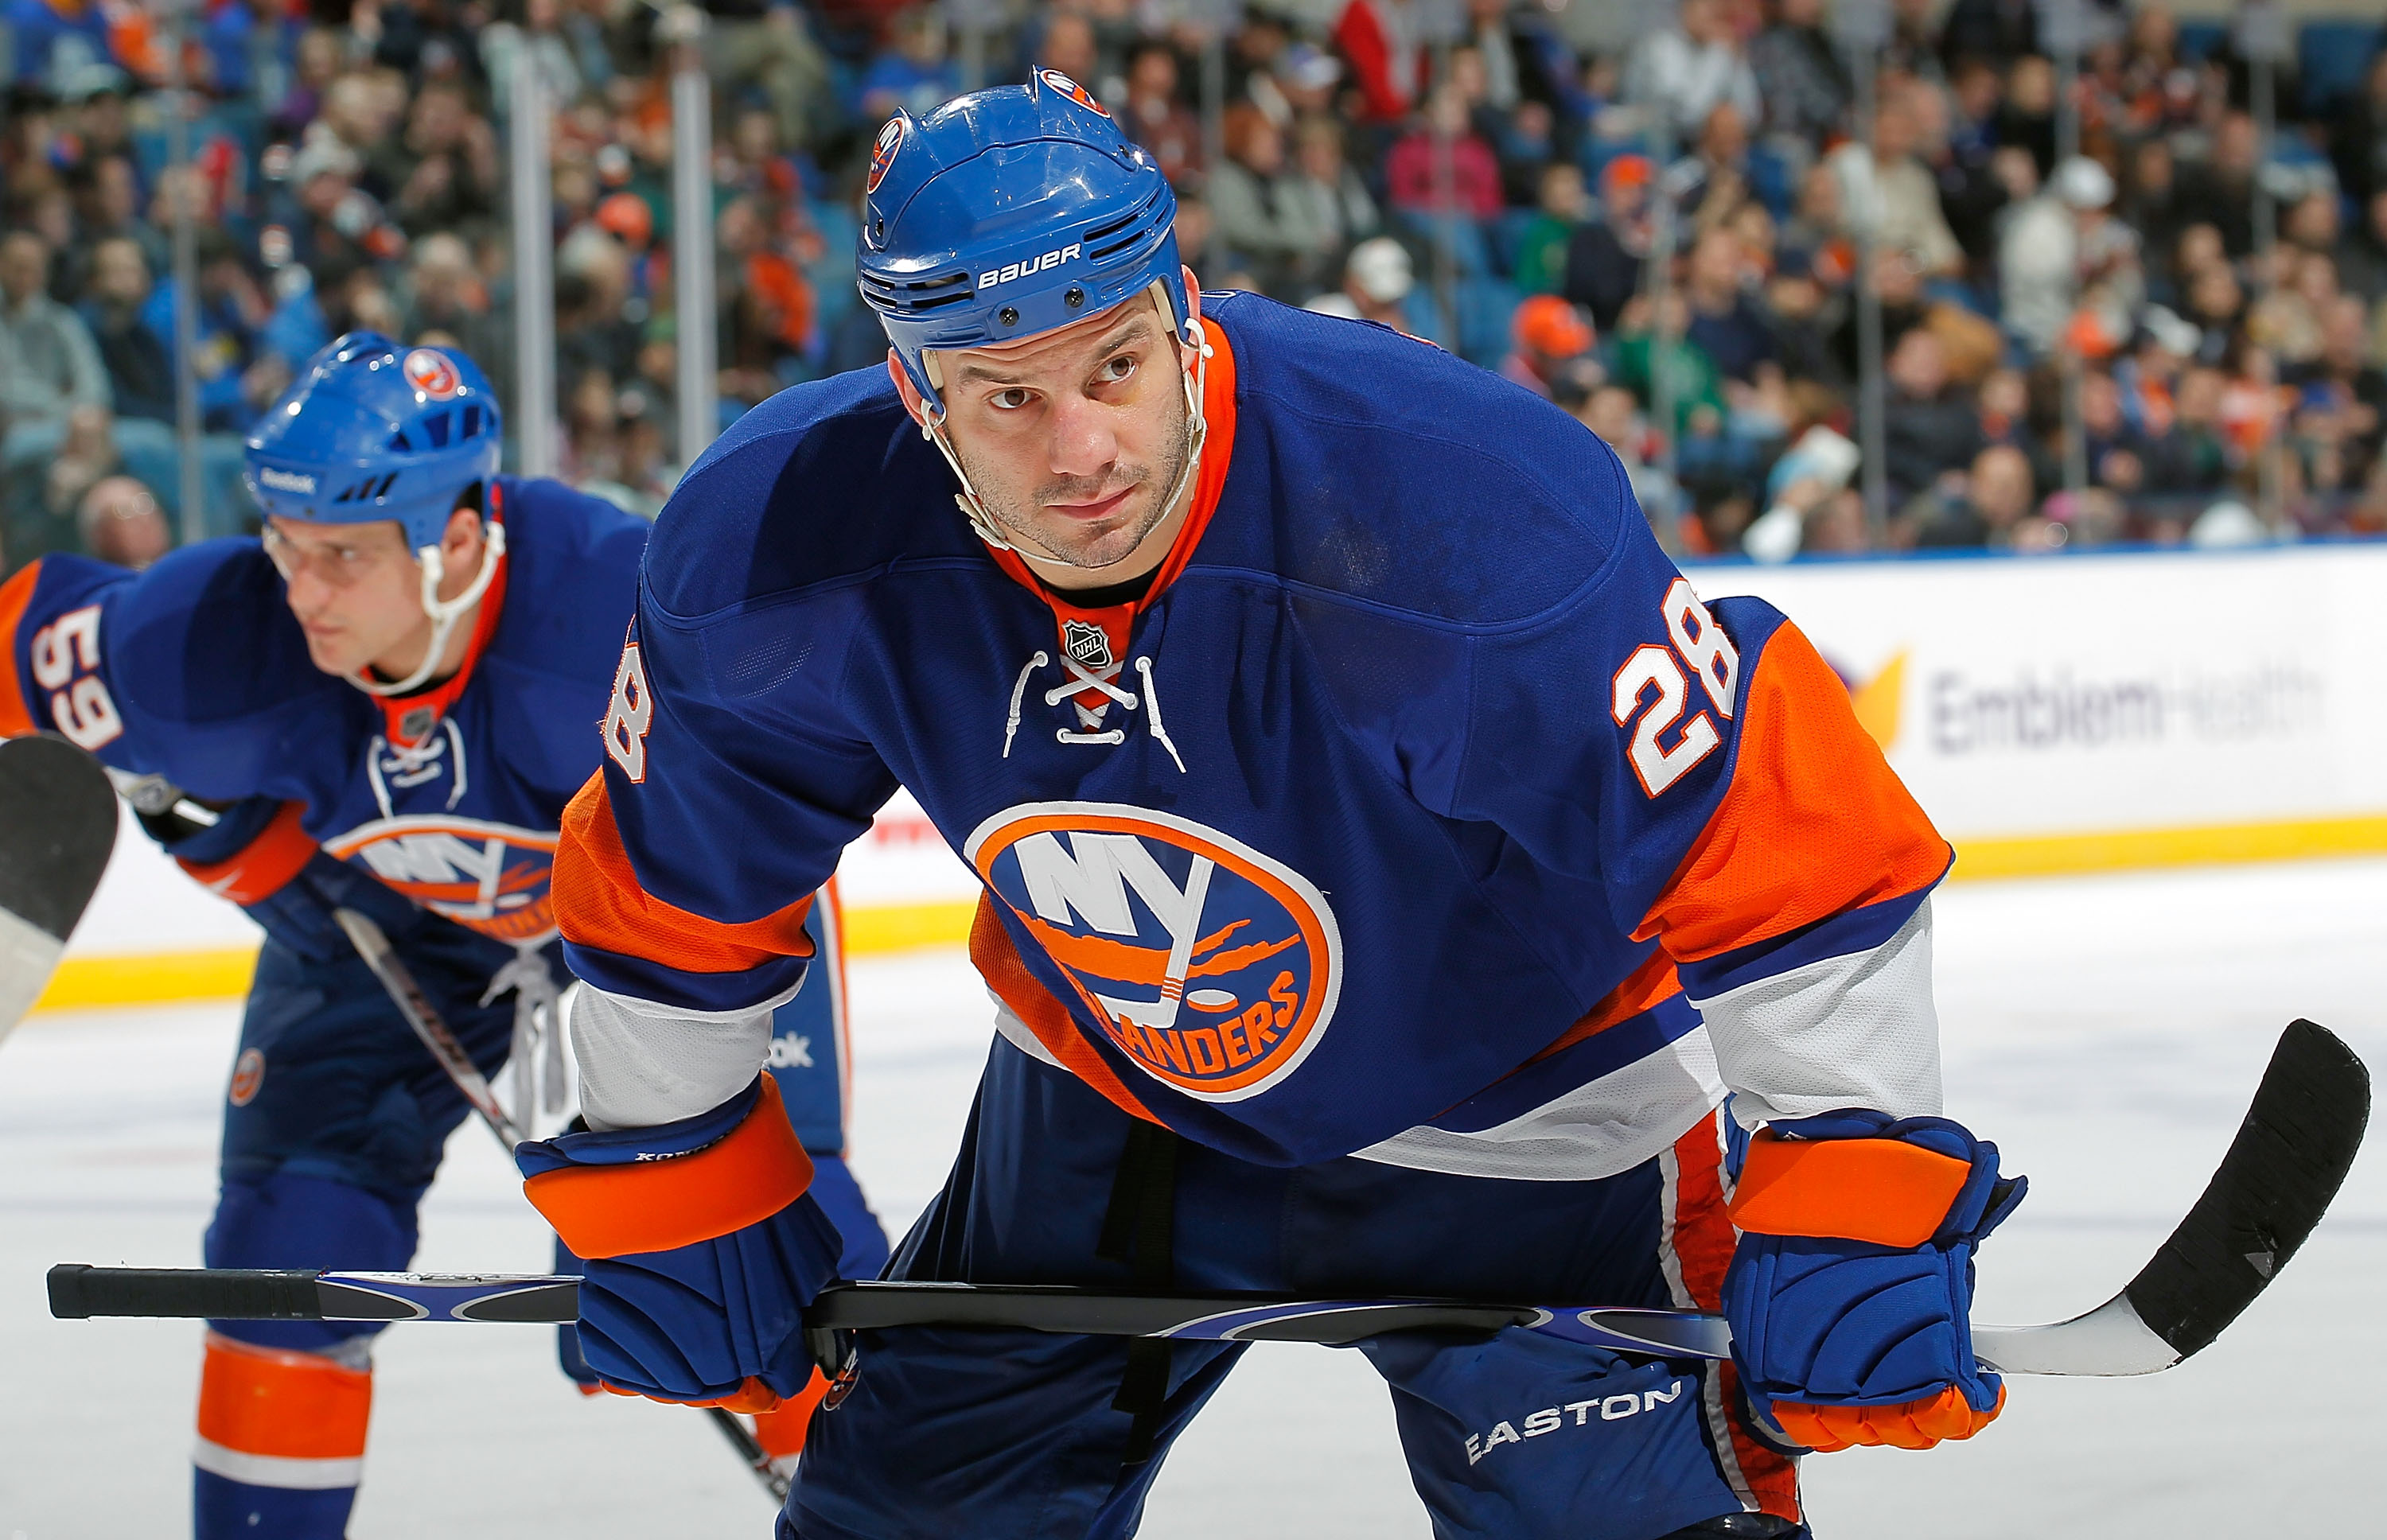 UNIONDALE, NY - FEBRUARY 21:  Zenon Konopka #28 of the New York Islanders waits for a faceoff during an NHL hockey game against the Florida Panthers at the Nassau Coliseum on February 21, 2011 in Uniondale, New York.  (Photo by Paul Bereswill/Getty Images